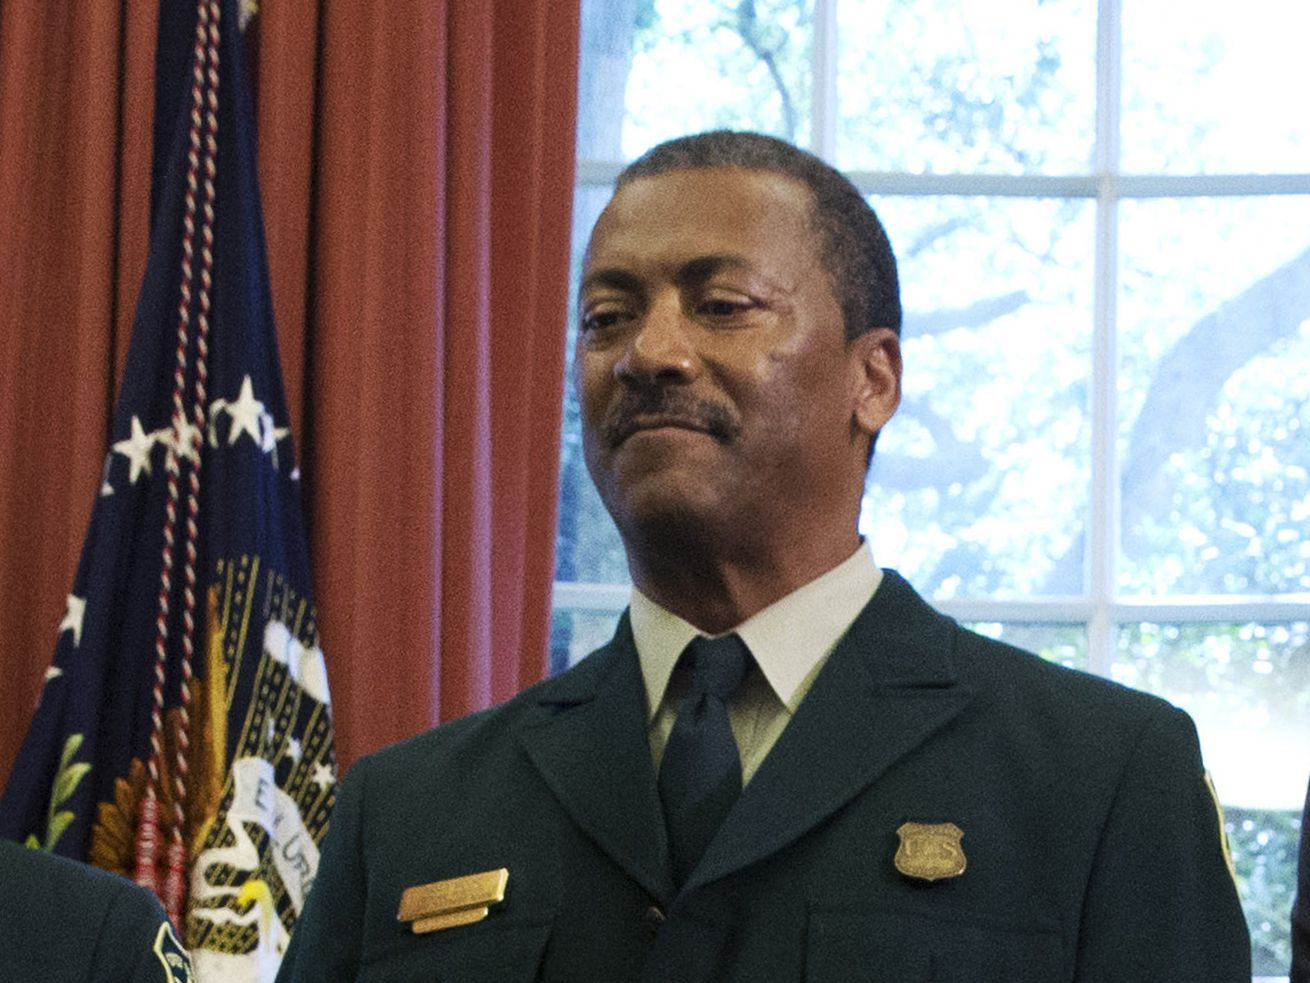 Randy Moore has been named chief of the U.S. Forest Service, the first African American to lead the agency in its 116-year history.